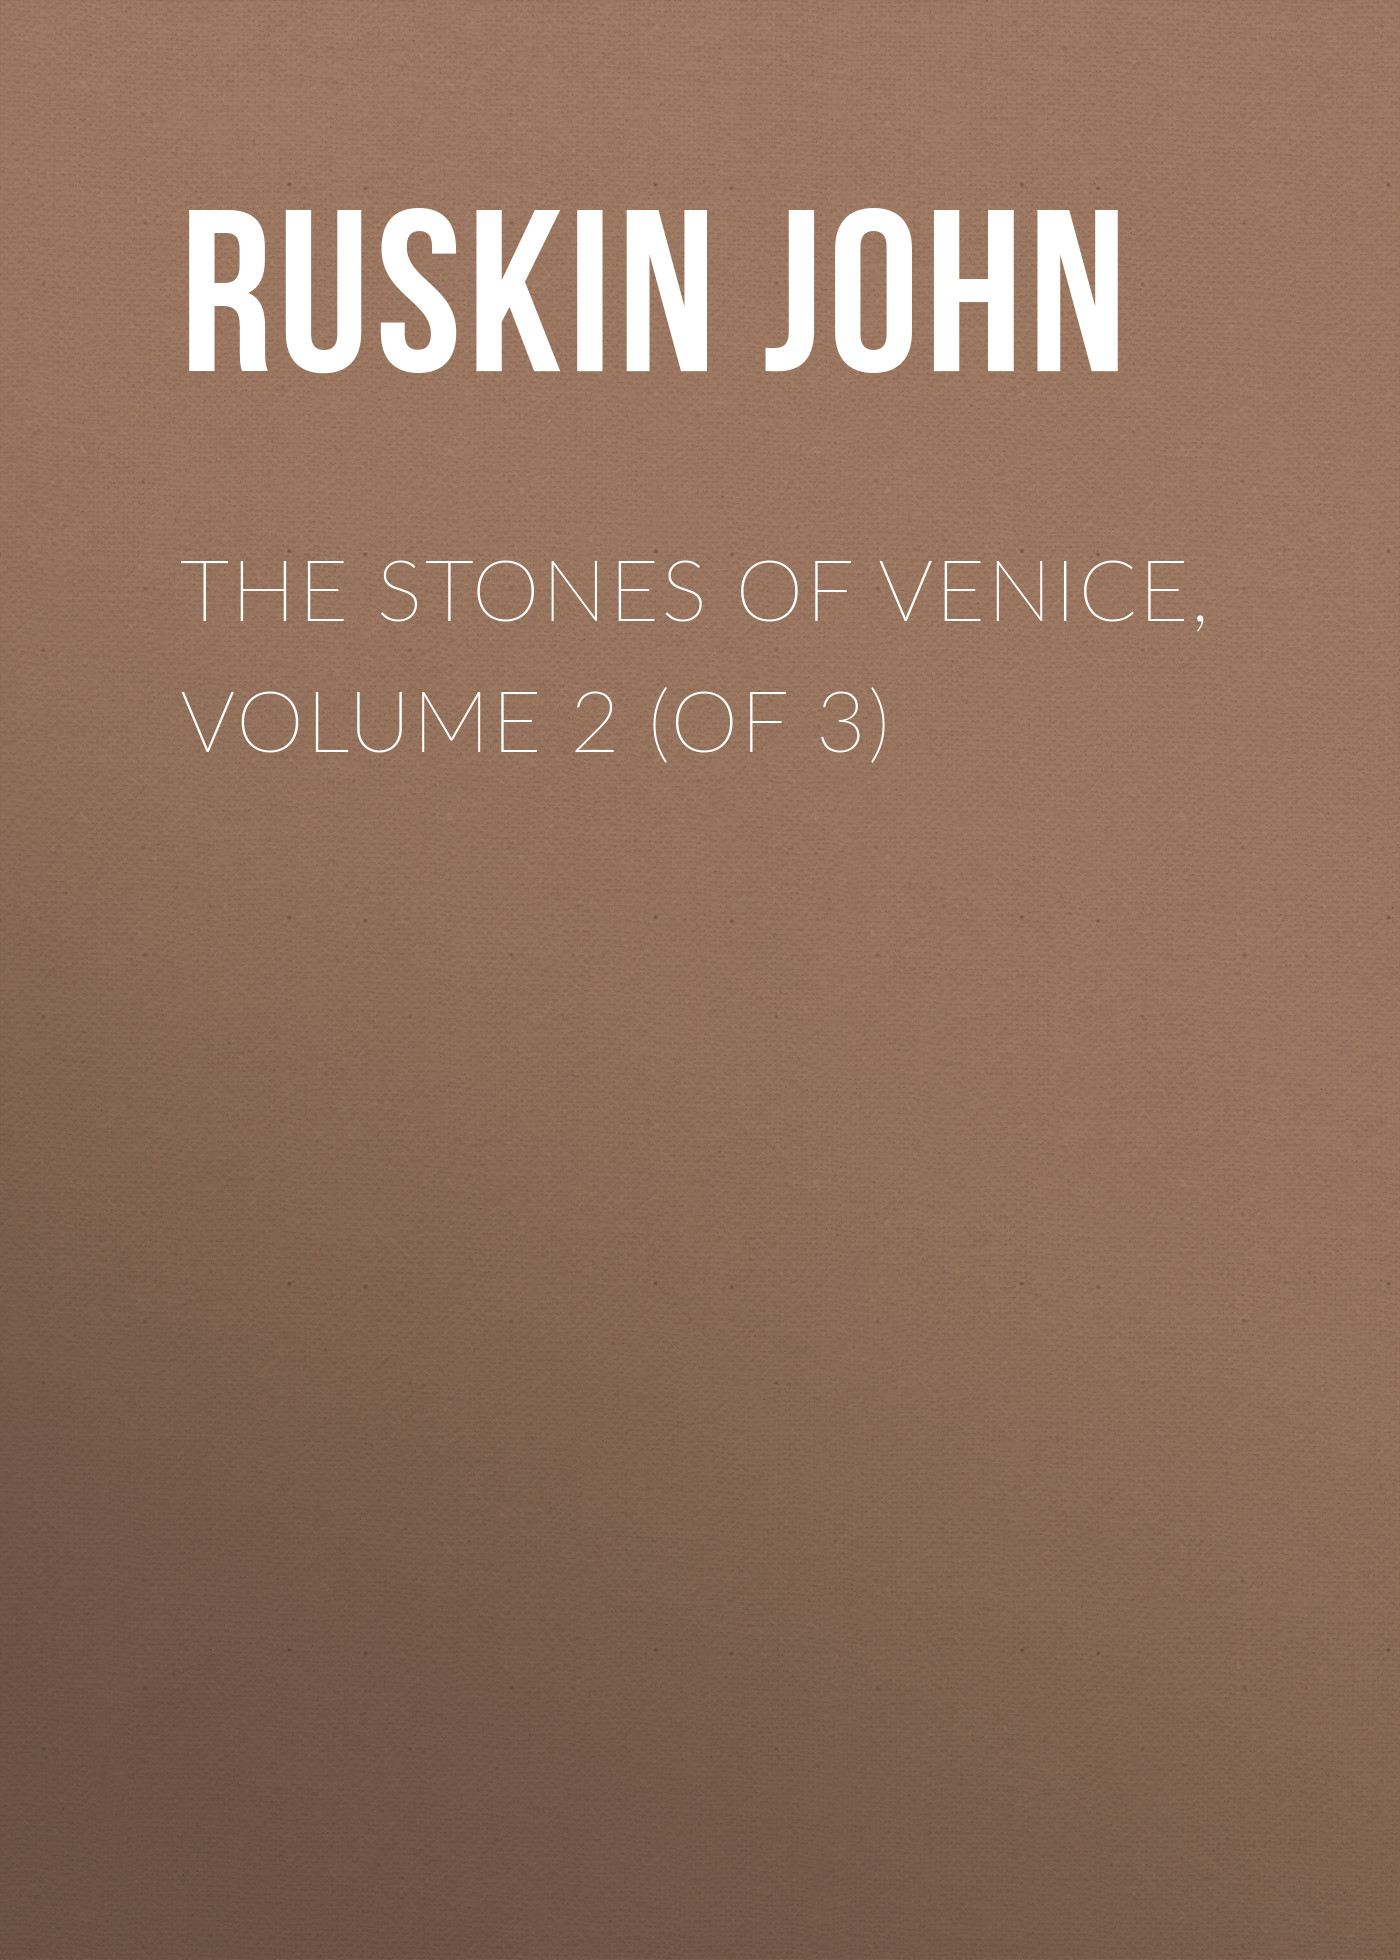 Ruskin John The Stones of Venice, Volume 2 (of 3) ruskin john 1819 1900 the poems of john ruskin now first collected from original manuscript and printed sources volume 2